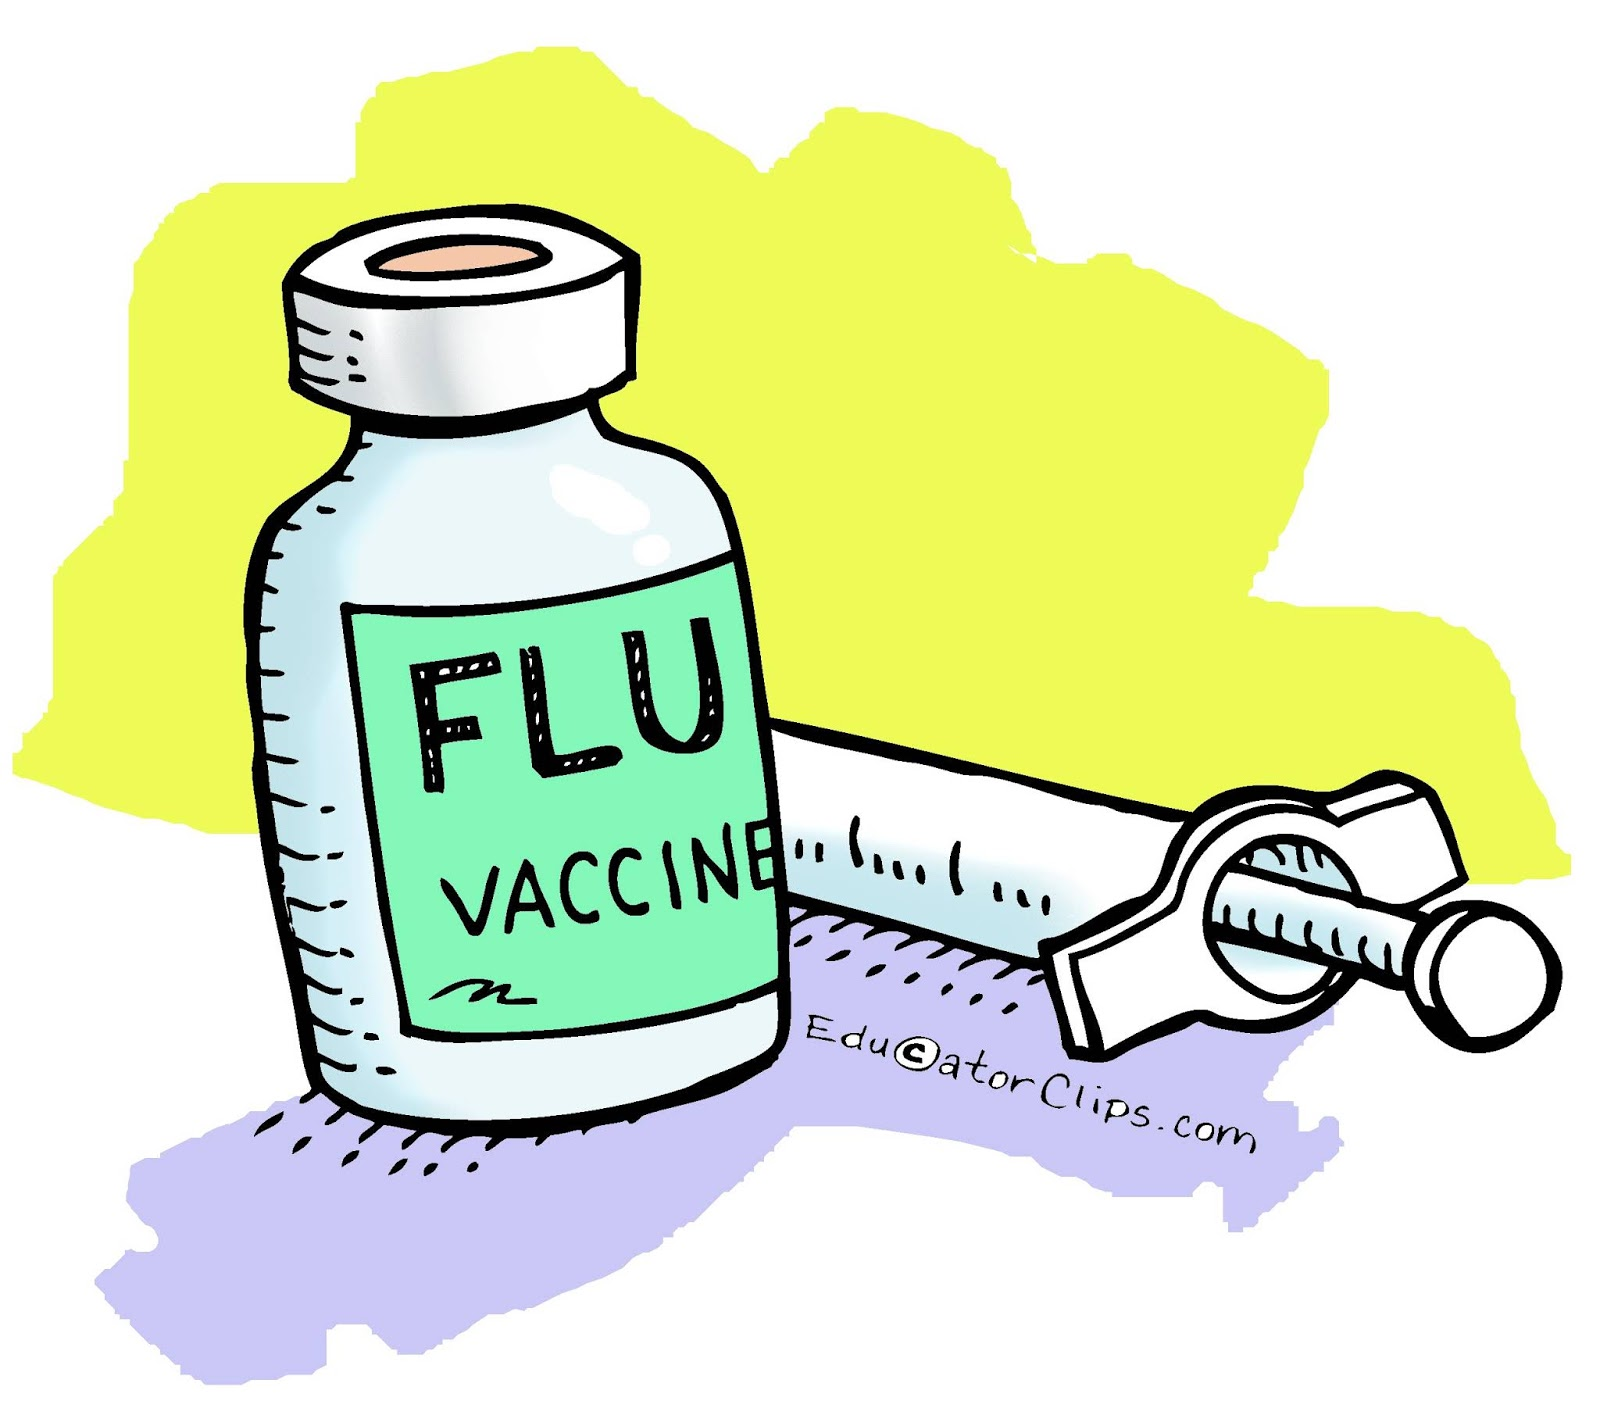 Uptown Update: City Announces Free Flu Shot Clinics.